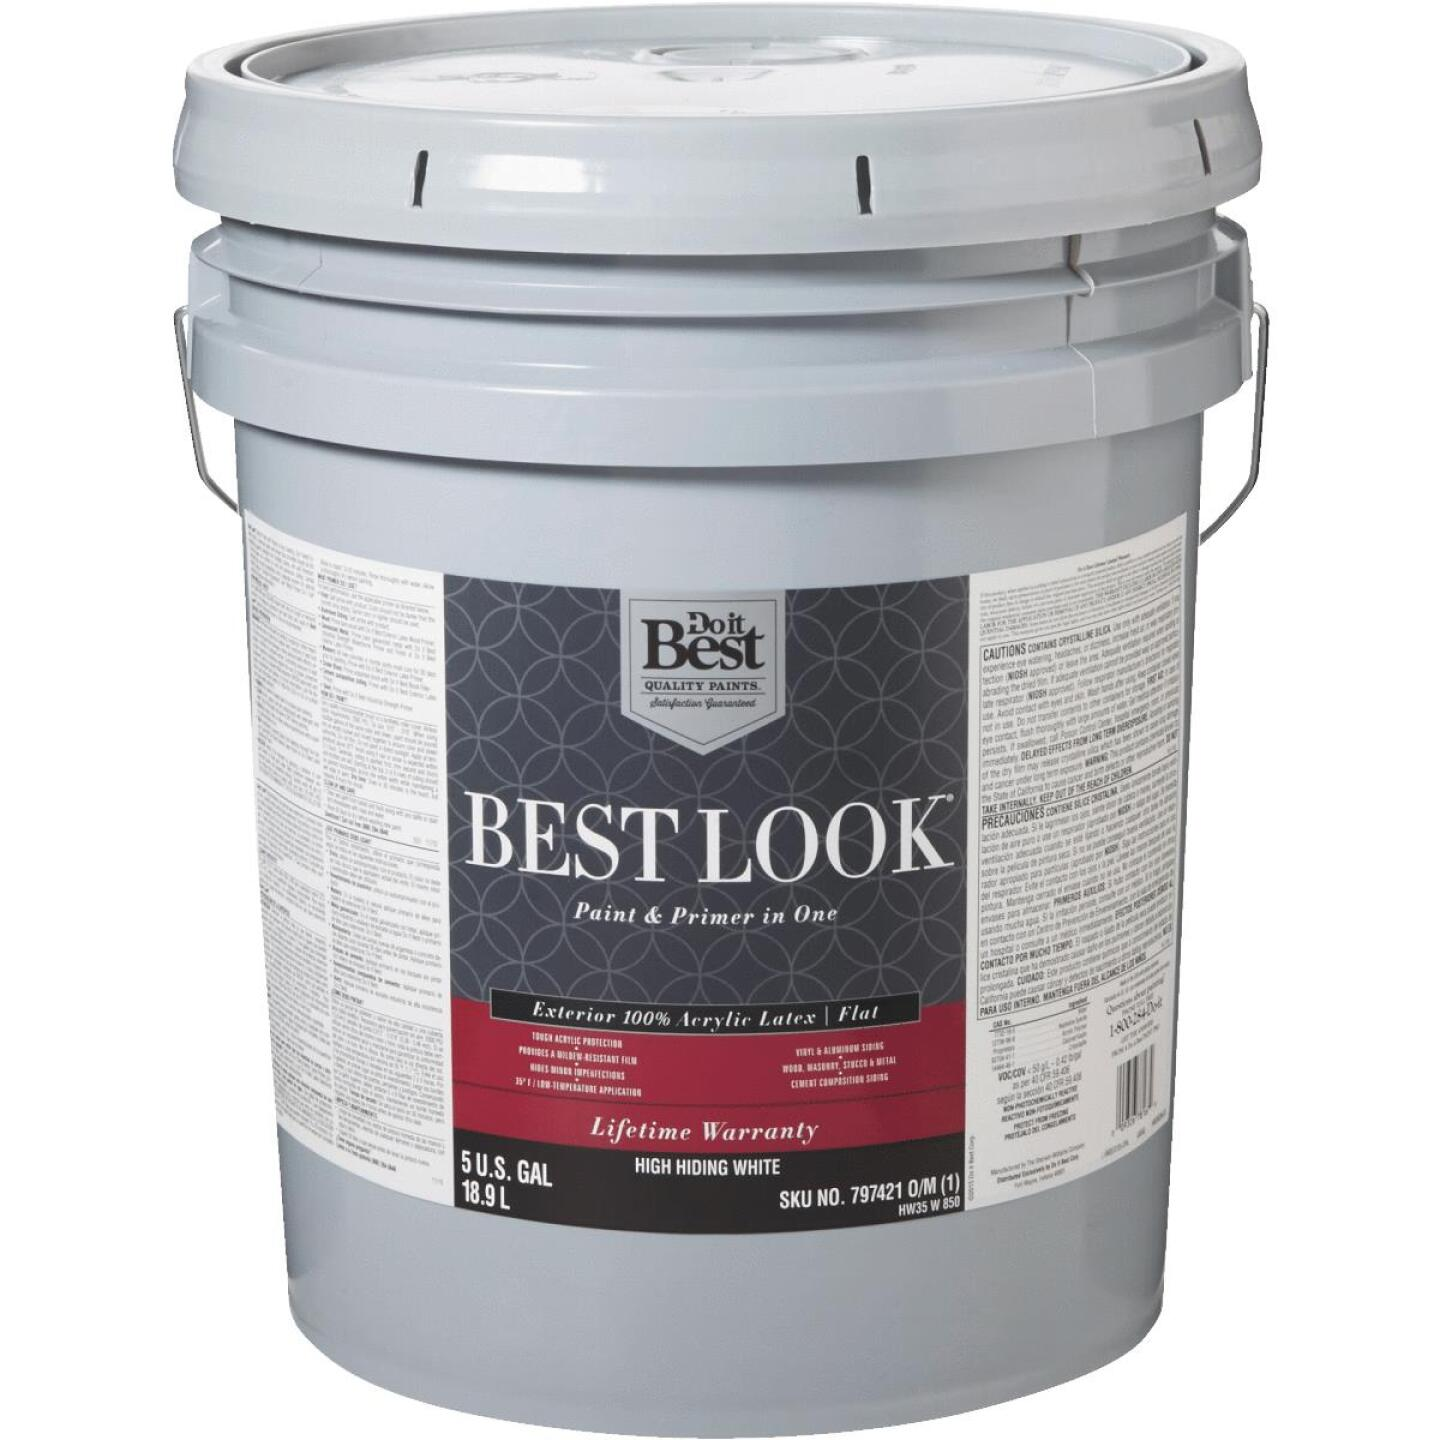 Best Look 100% Acrylic Latex Paint & Primer In One Flat Exterior House Paint, High Hiding White, 5 Gal. Image 1